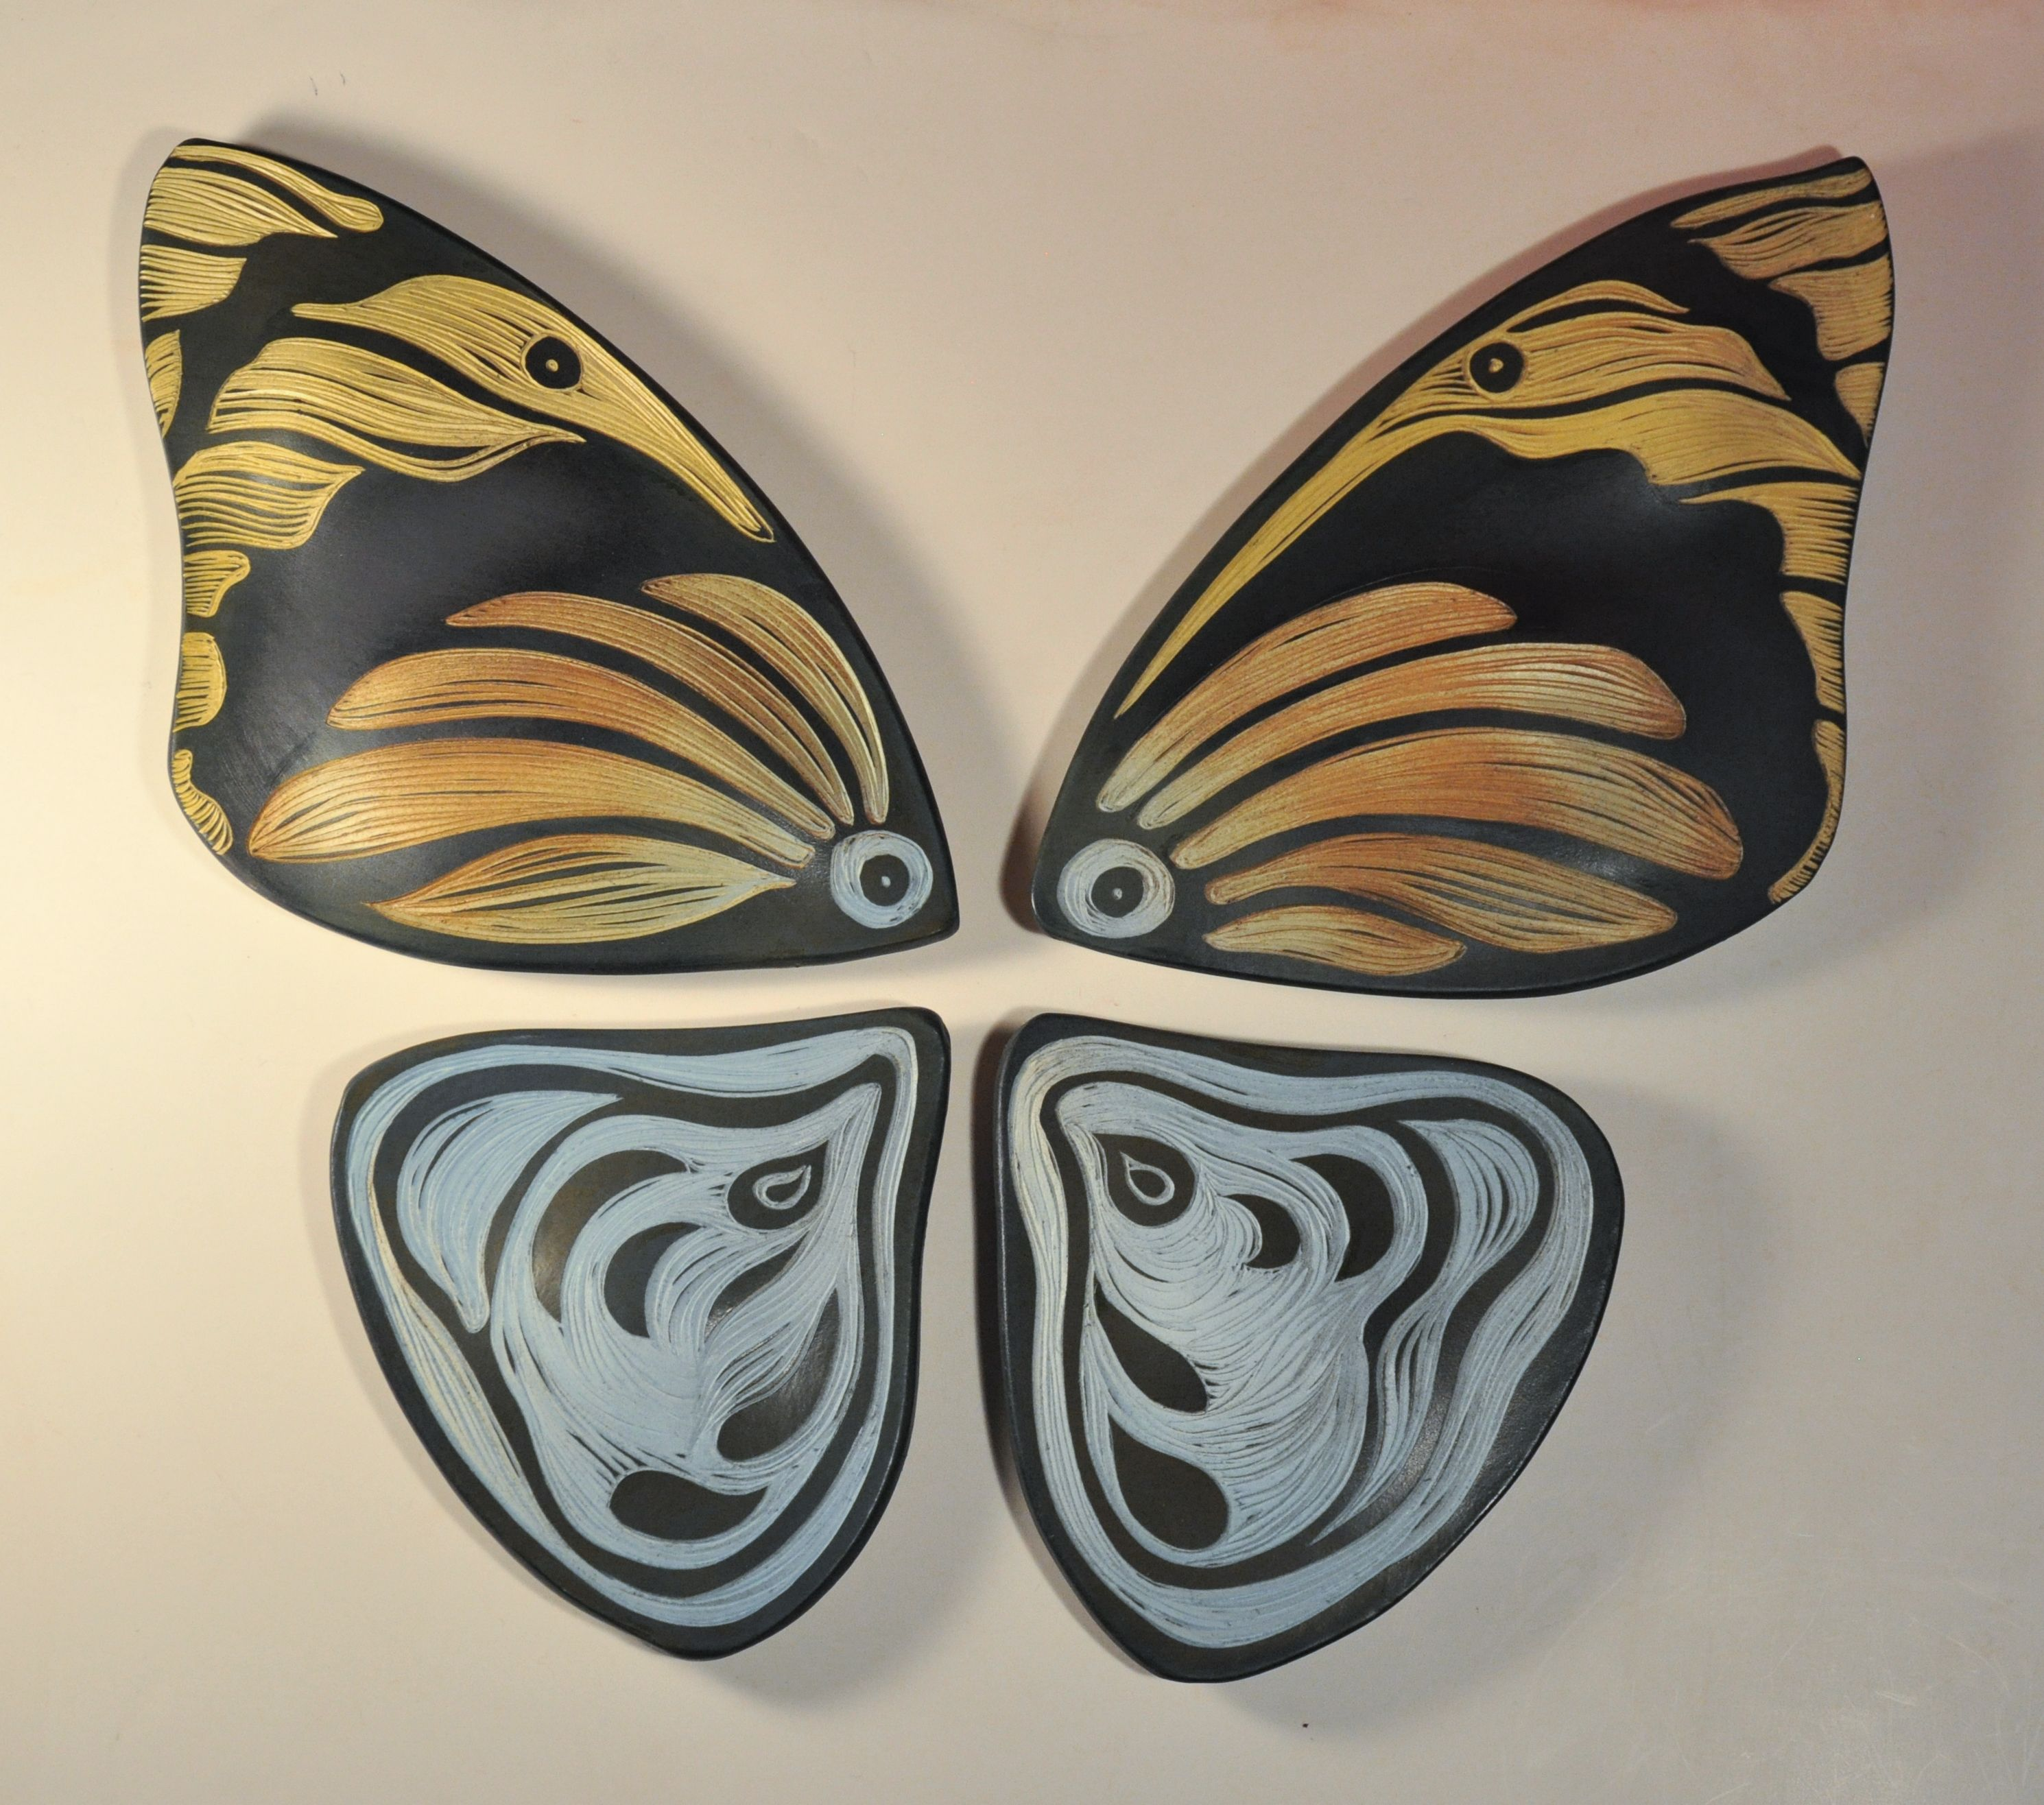 Ceramic wall art tiles gallery tile flooring design ideas natalie blake studios handmade ceramic wall art tile butterfly natalie blake studios handmade ceramic wall art dailygadgetfo Gallery